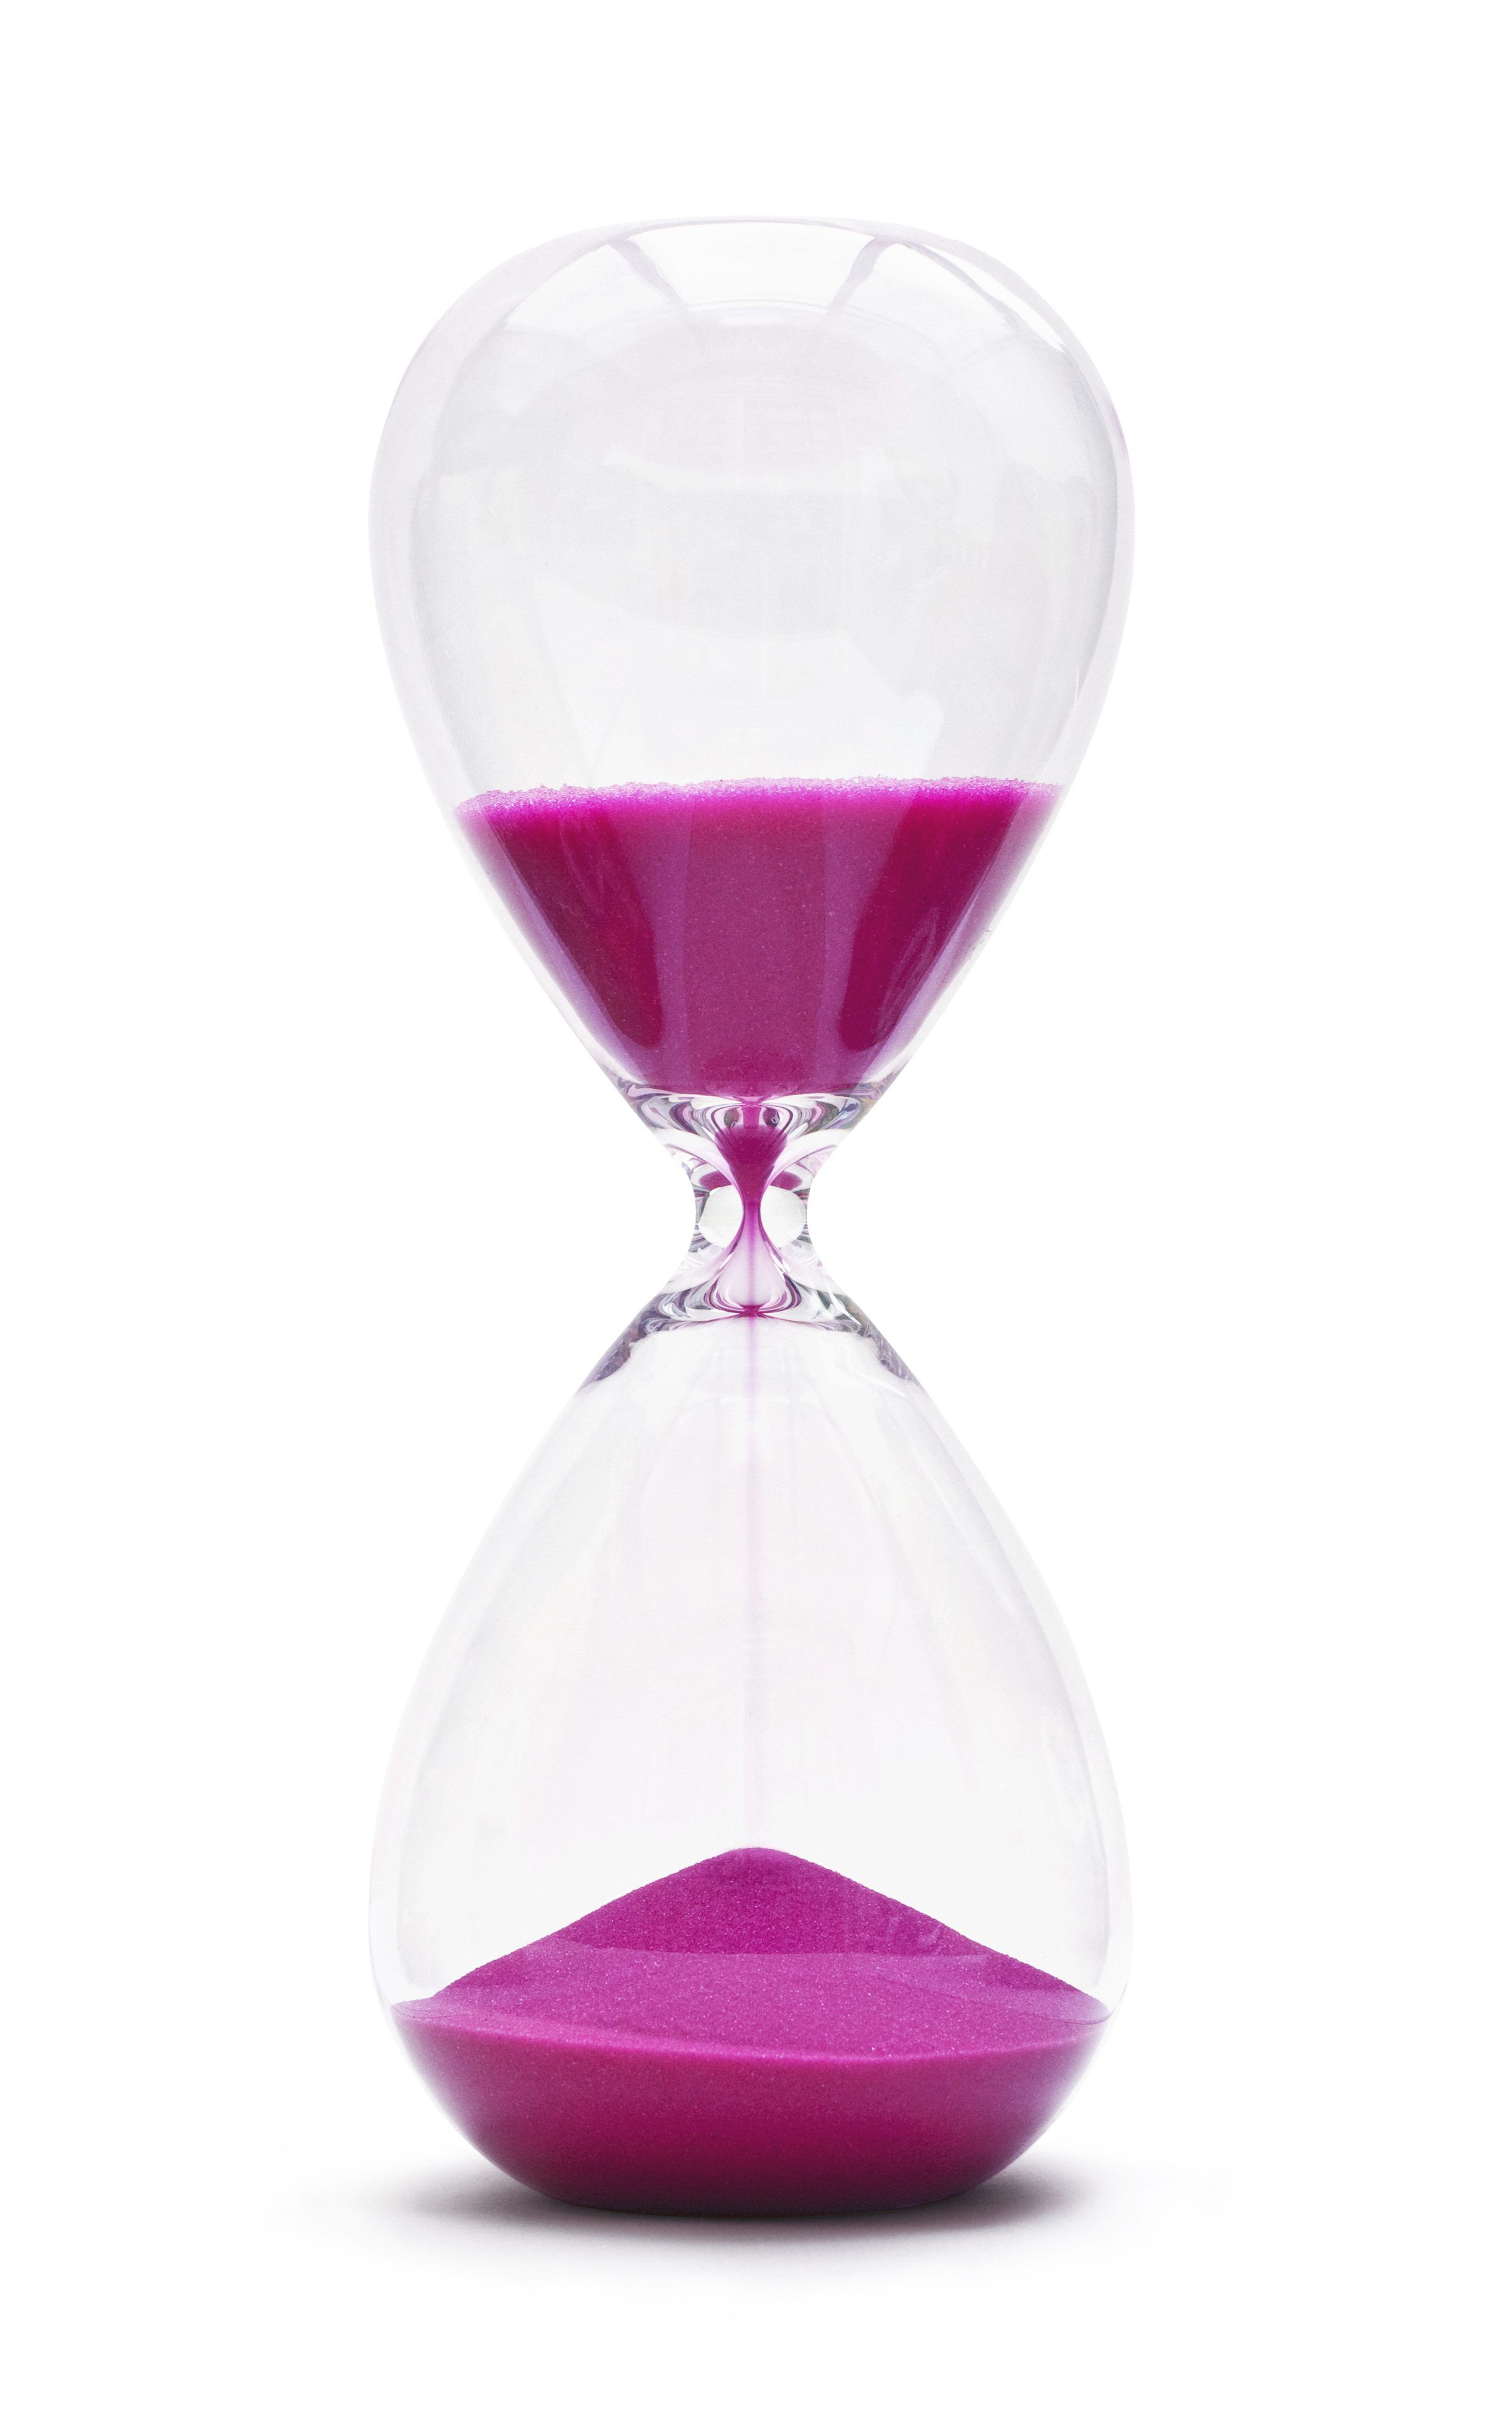 How to Make an Hourglass Clock Out of Light Bulbs How to Make an Hourglass Clock Out of Light Bulbs new picture